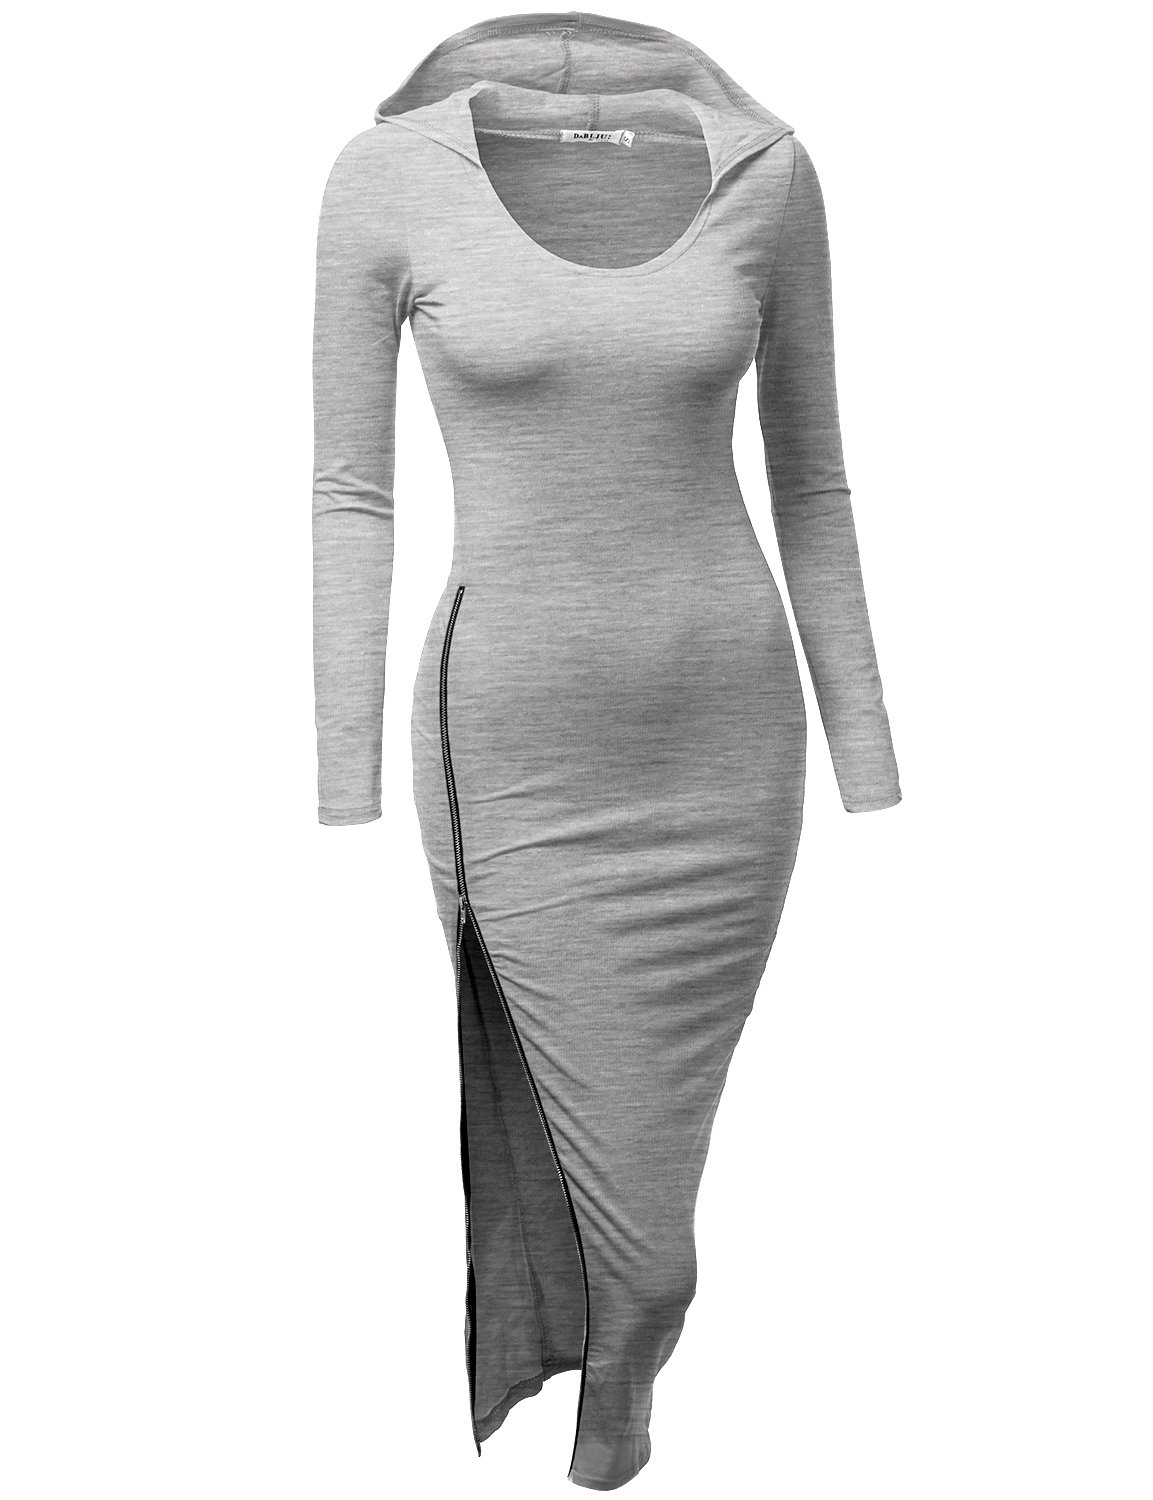 Doublju Fitted Dress With Sexy Side Zipper Point For Women With Plus Size GRAY MEDIUM by Doublju (Image #2)